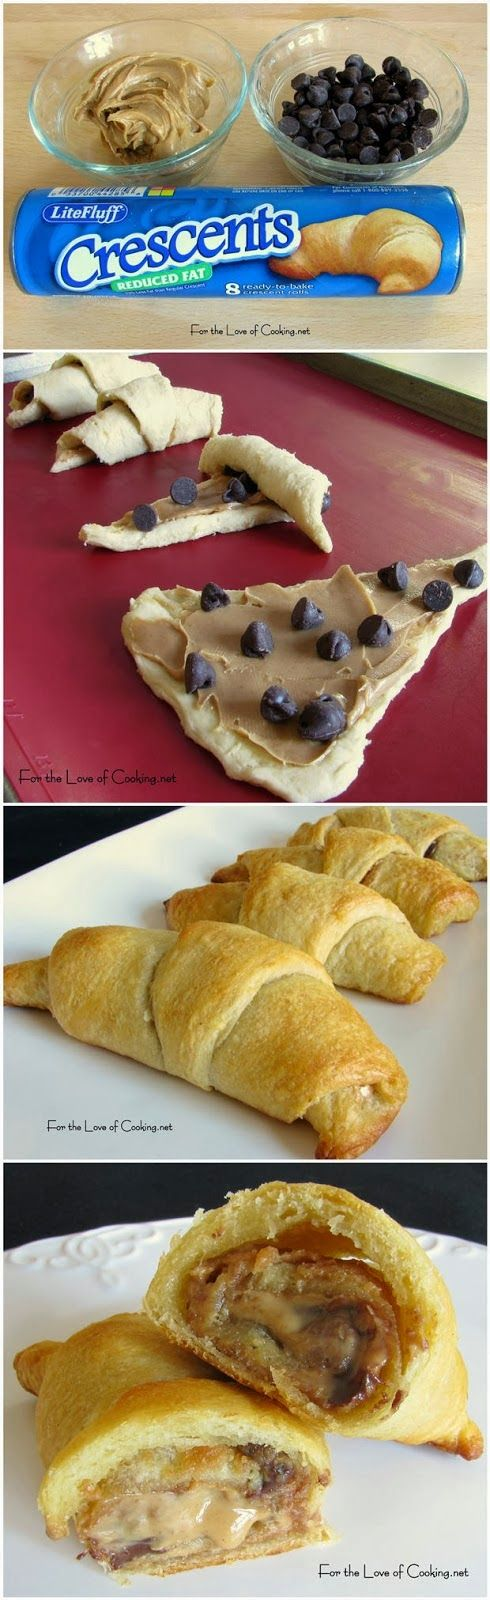 Chocolate and Peanut Butter Crescent Rolls ~ Easy Kitchen 4 All